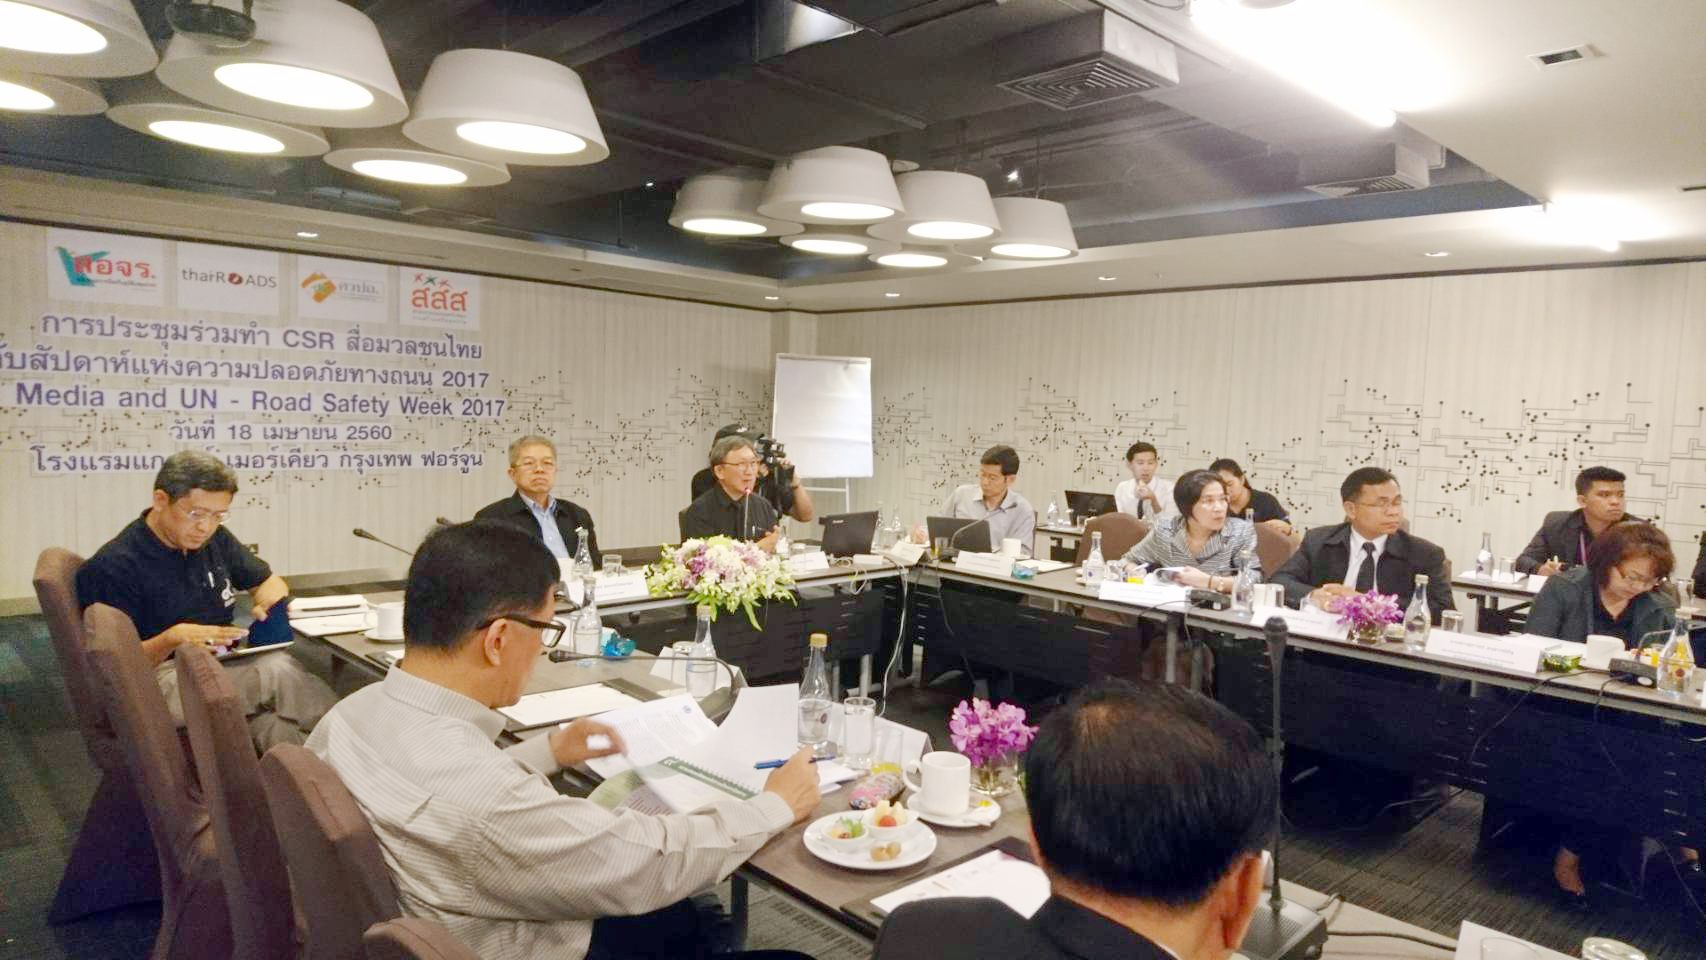 Thailand News - 20-04-17 3 NNT Network of Road Safety urges Thailand to observe speed limits 1